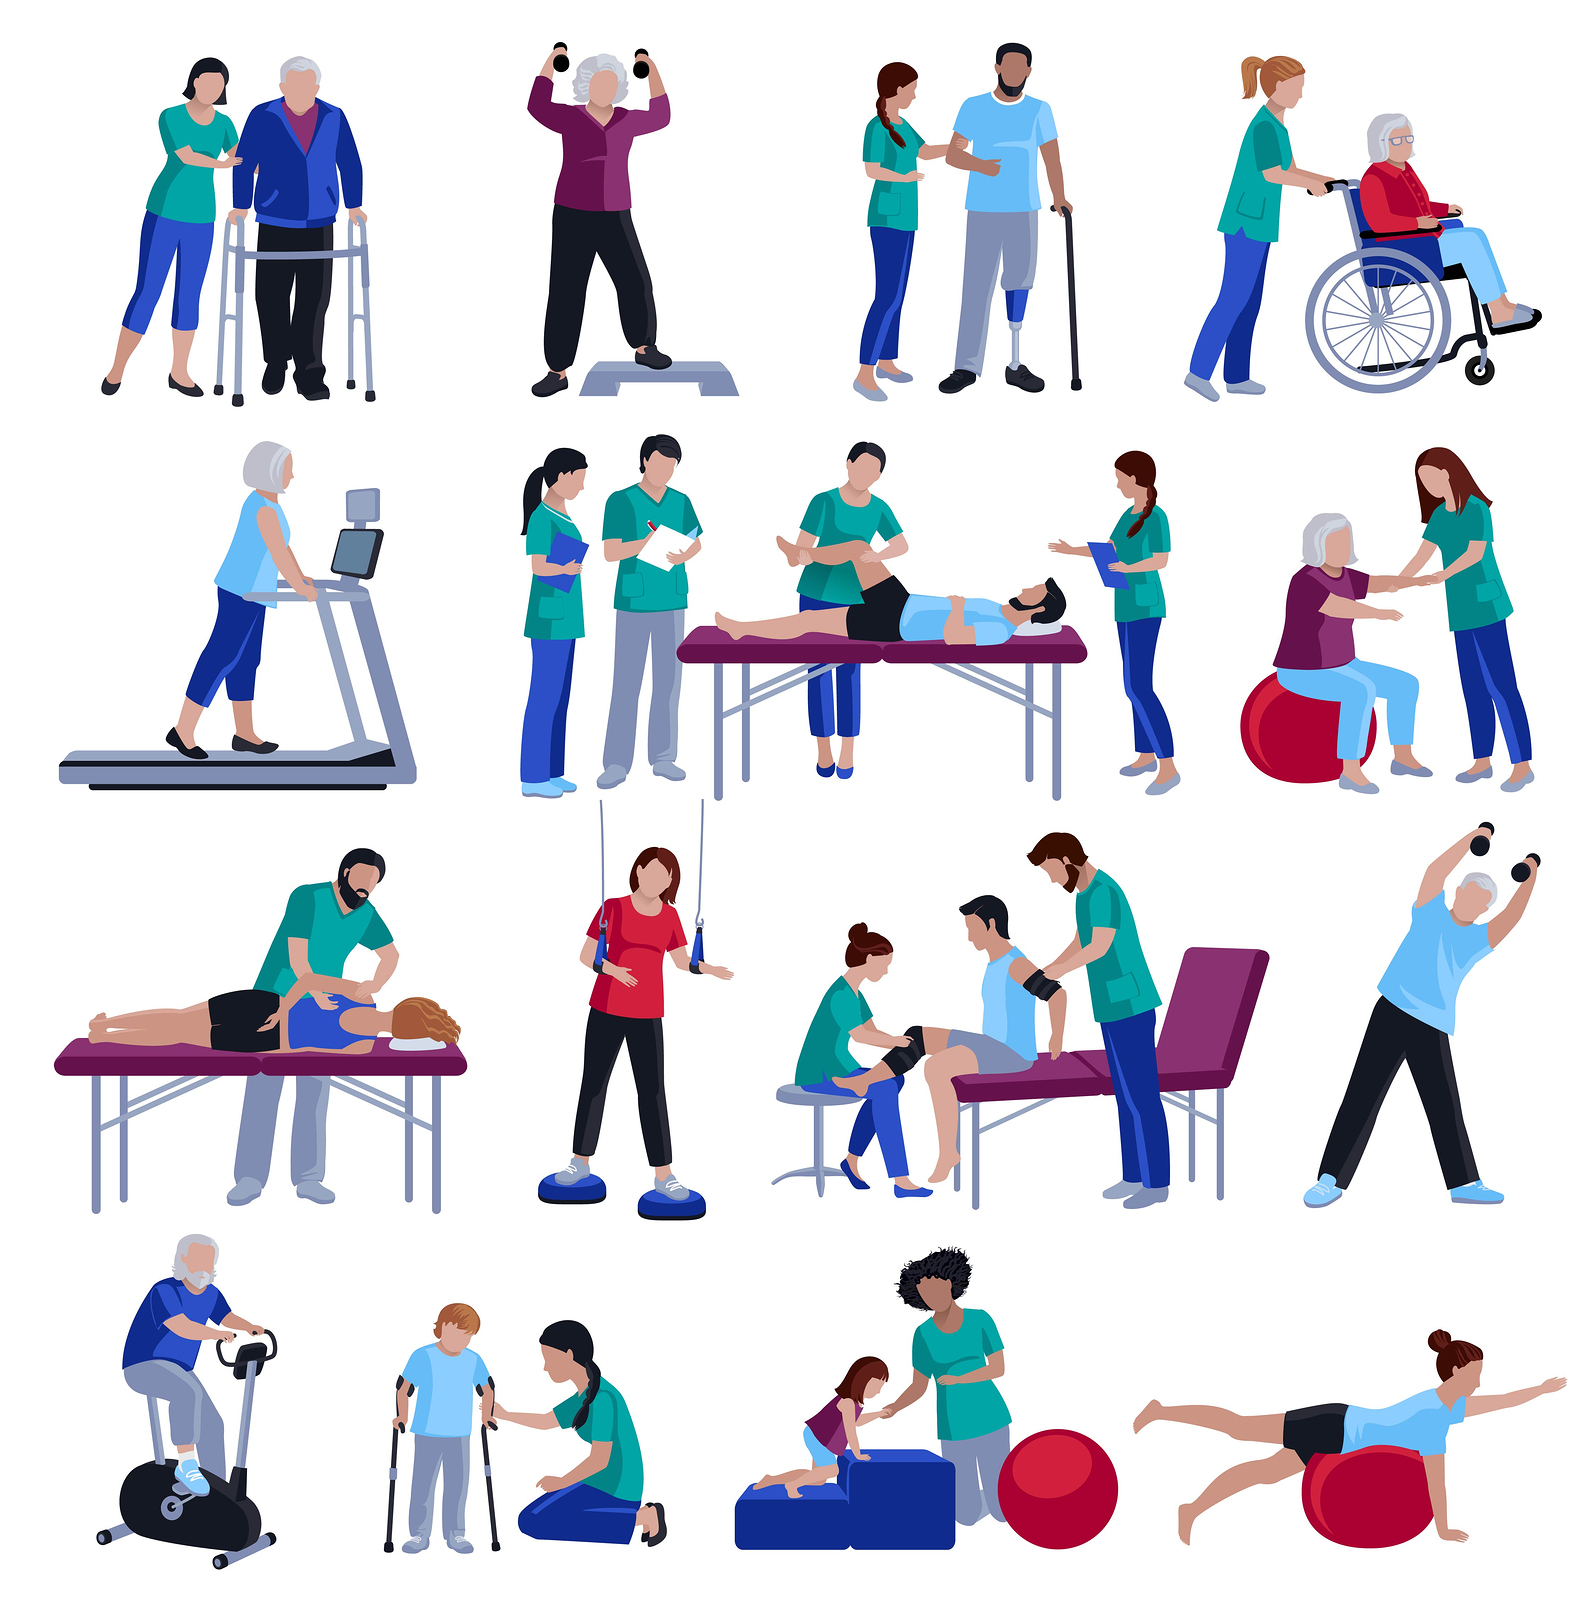 Physiotherapy rehabilitation sessions for people with geriatric conditions.